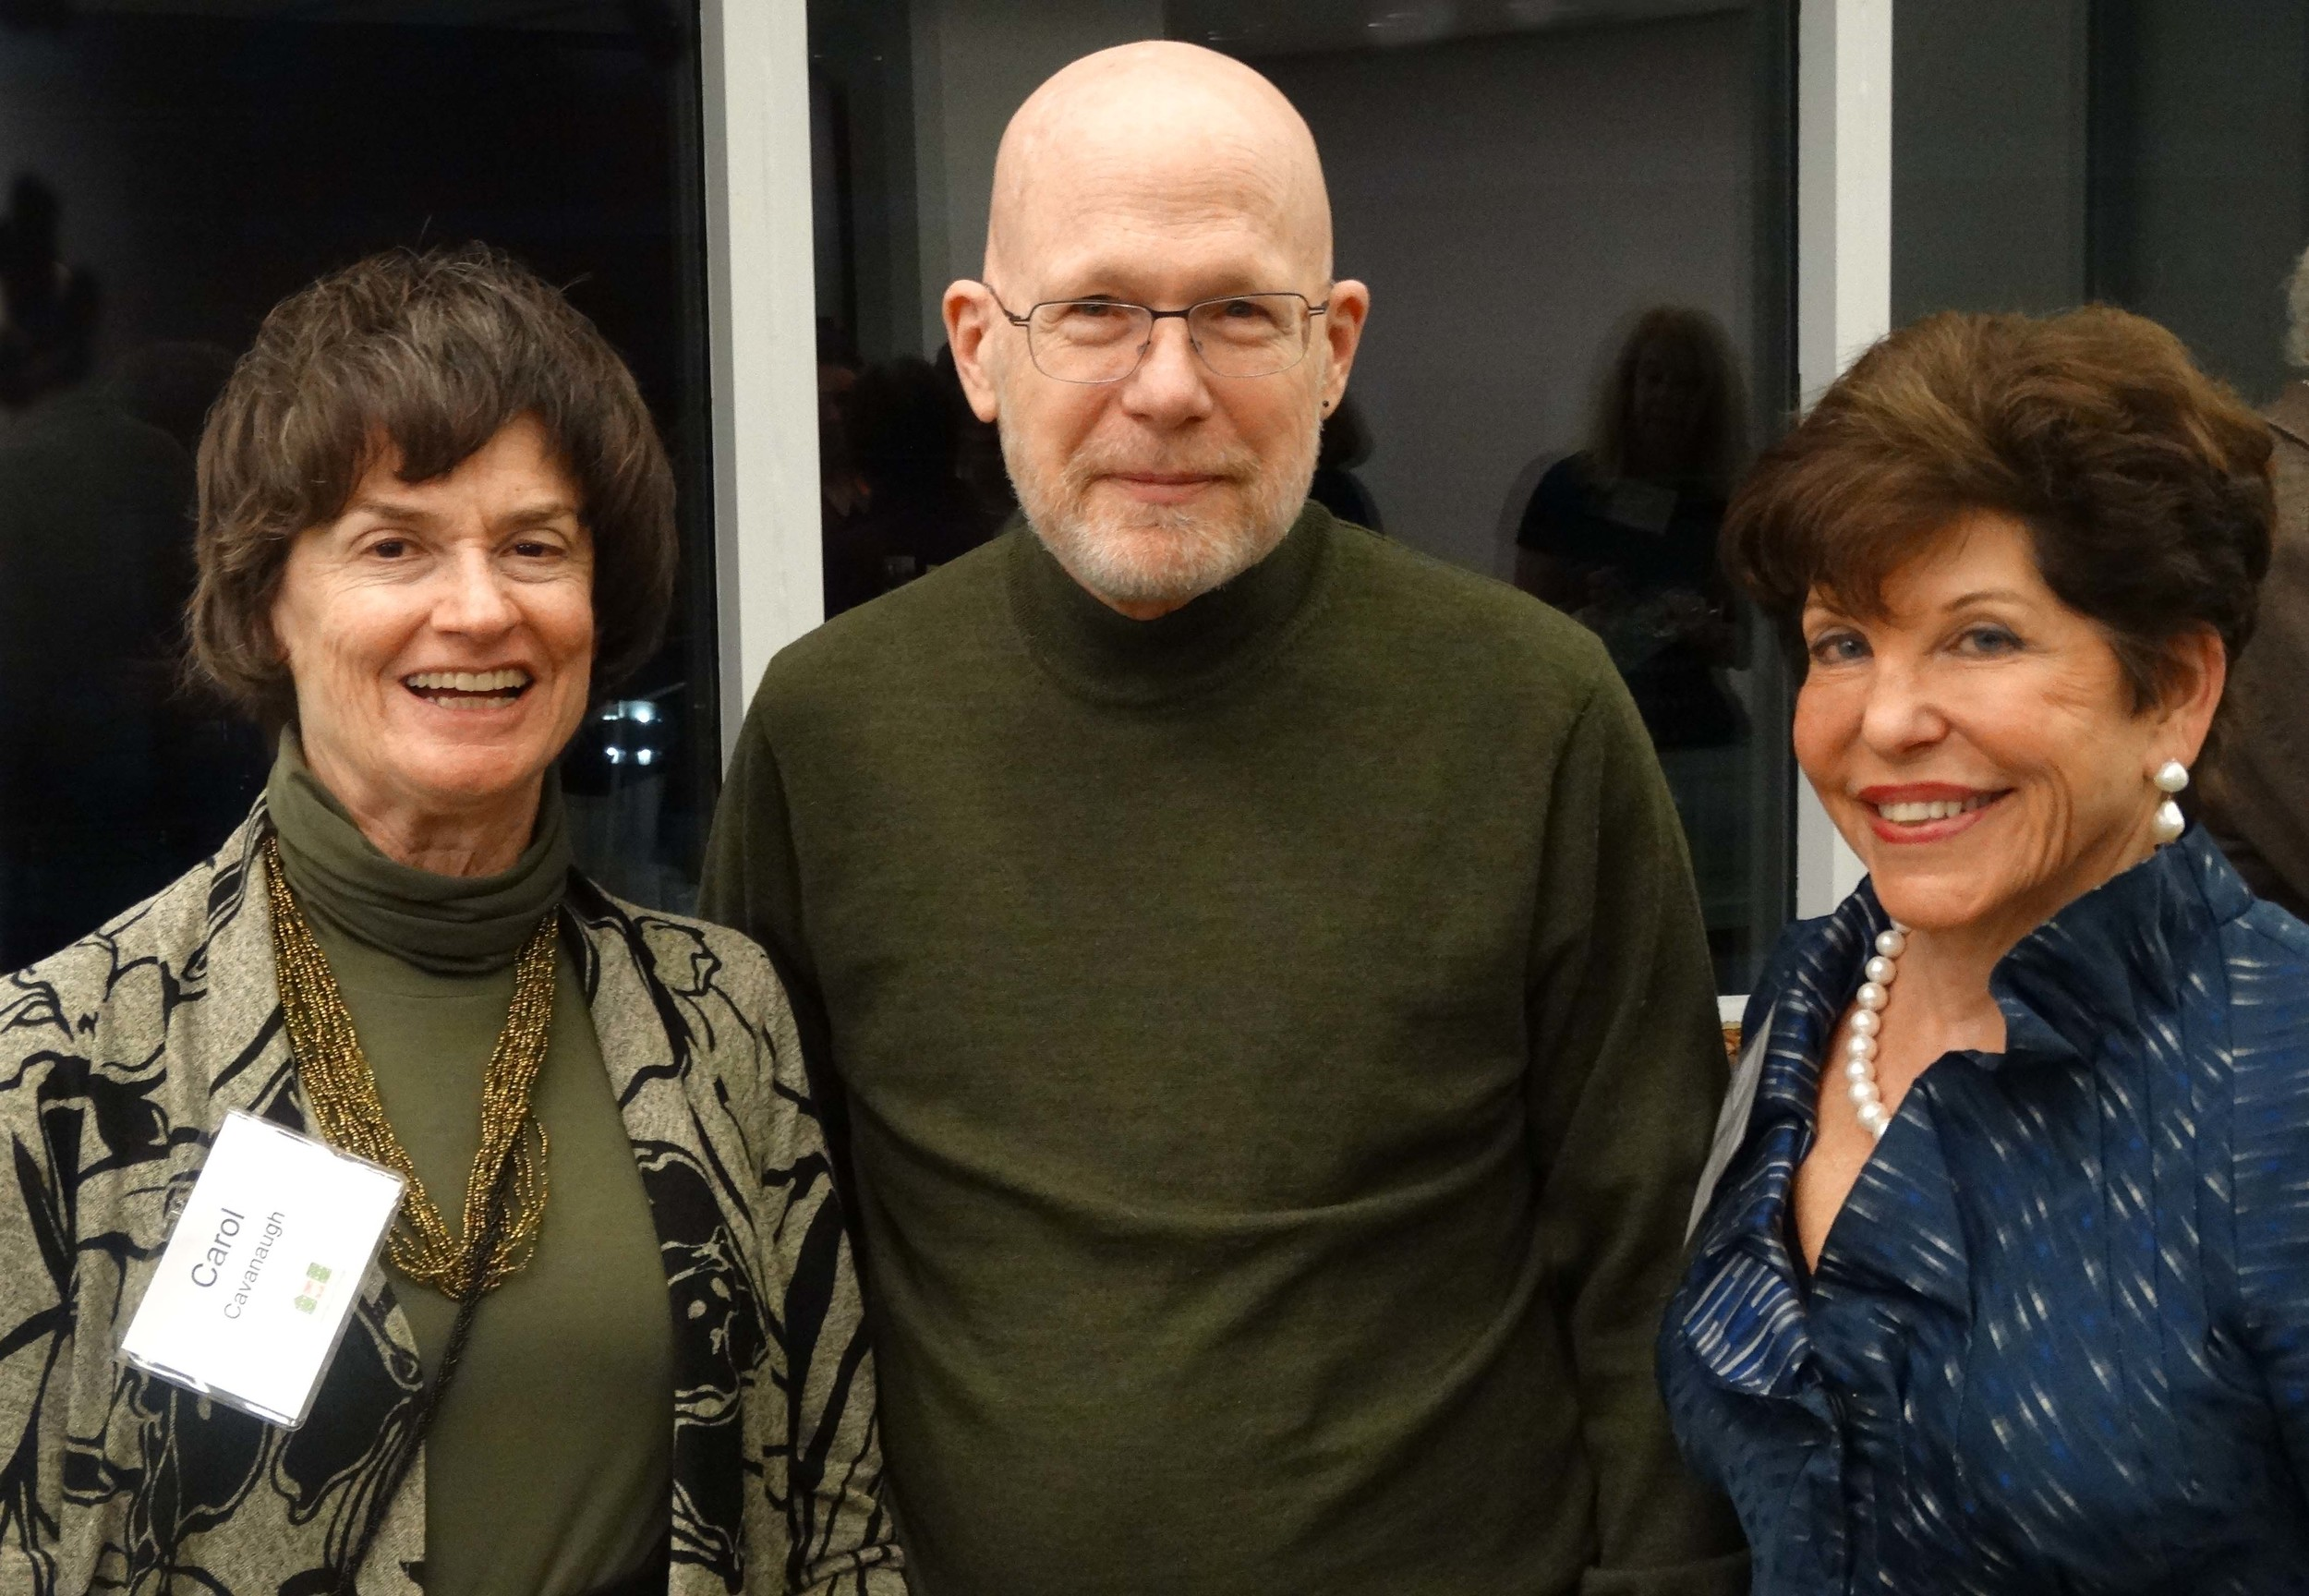 Board President Gail Nordheimer (right) with Burleith residents and GV members/volunteers Carol Cavanaugh and Lee Gravate.